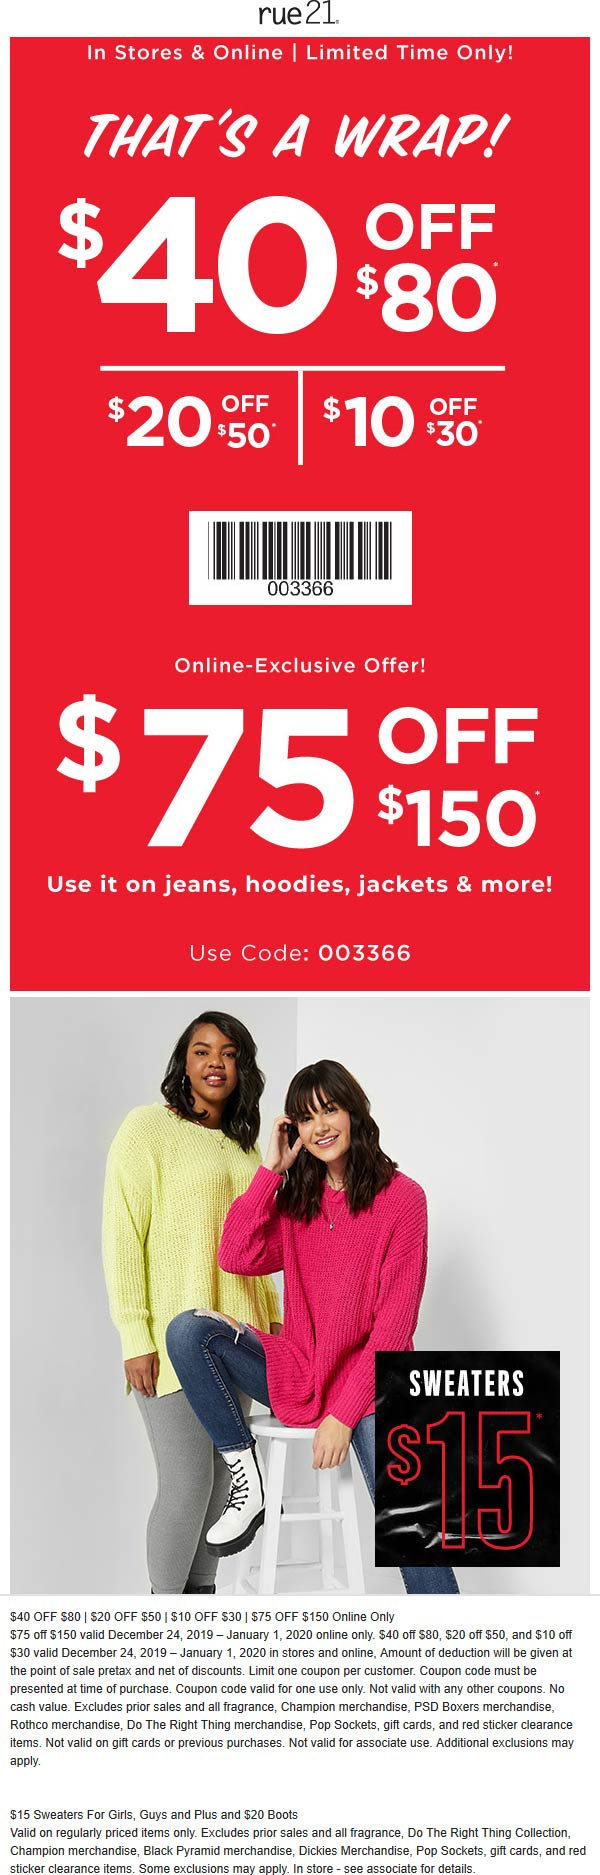 Rue21 Coupon January 2020 $10 off $30 & more at rue21, or online via promo code 003366